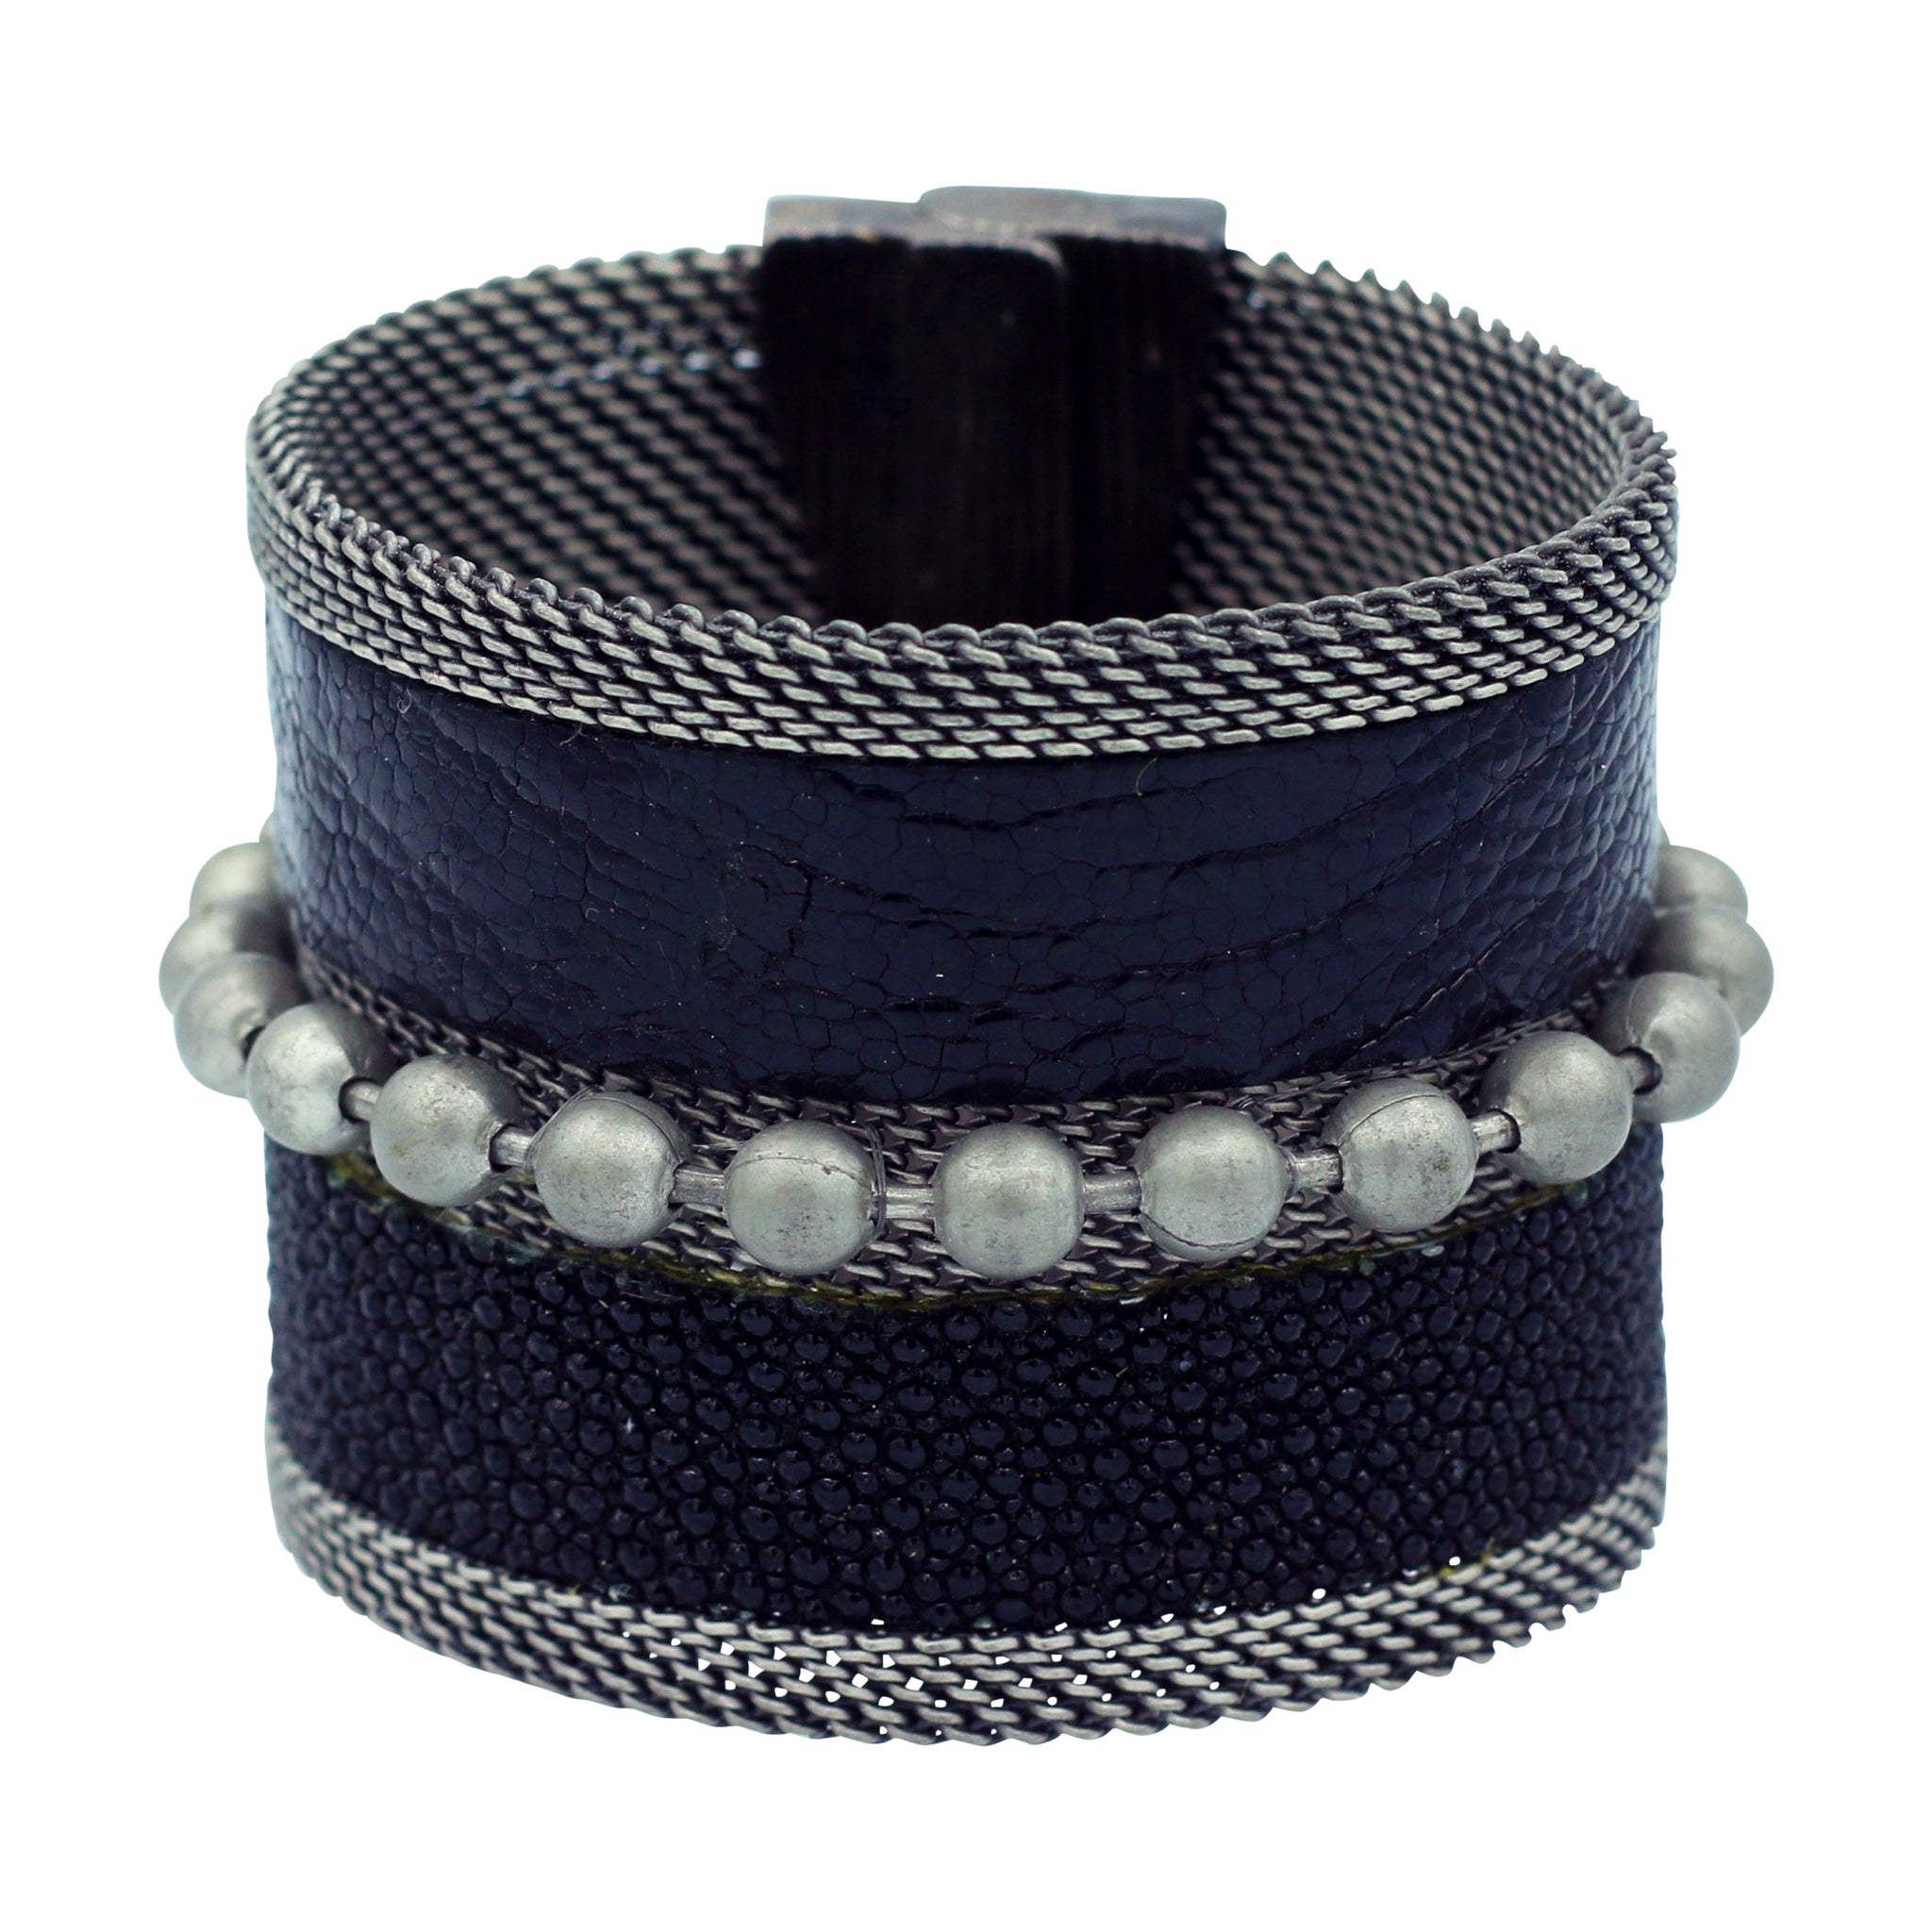 Black Snakeskin & Stingray Cuff